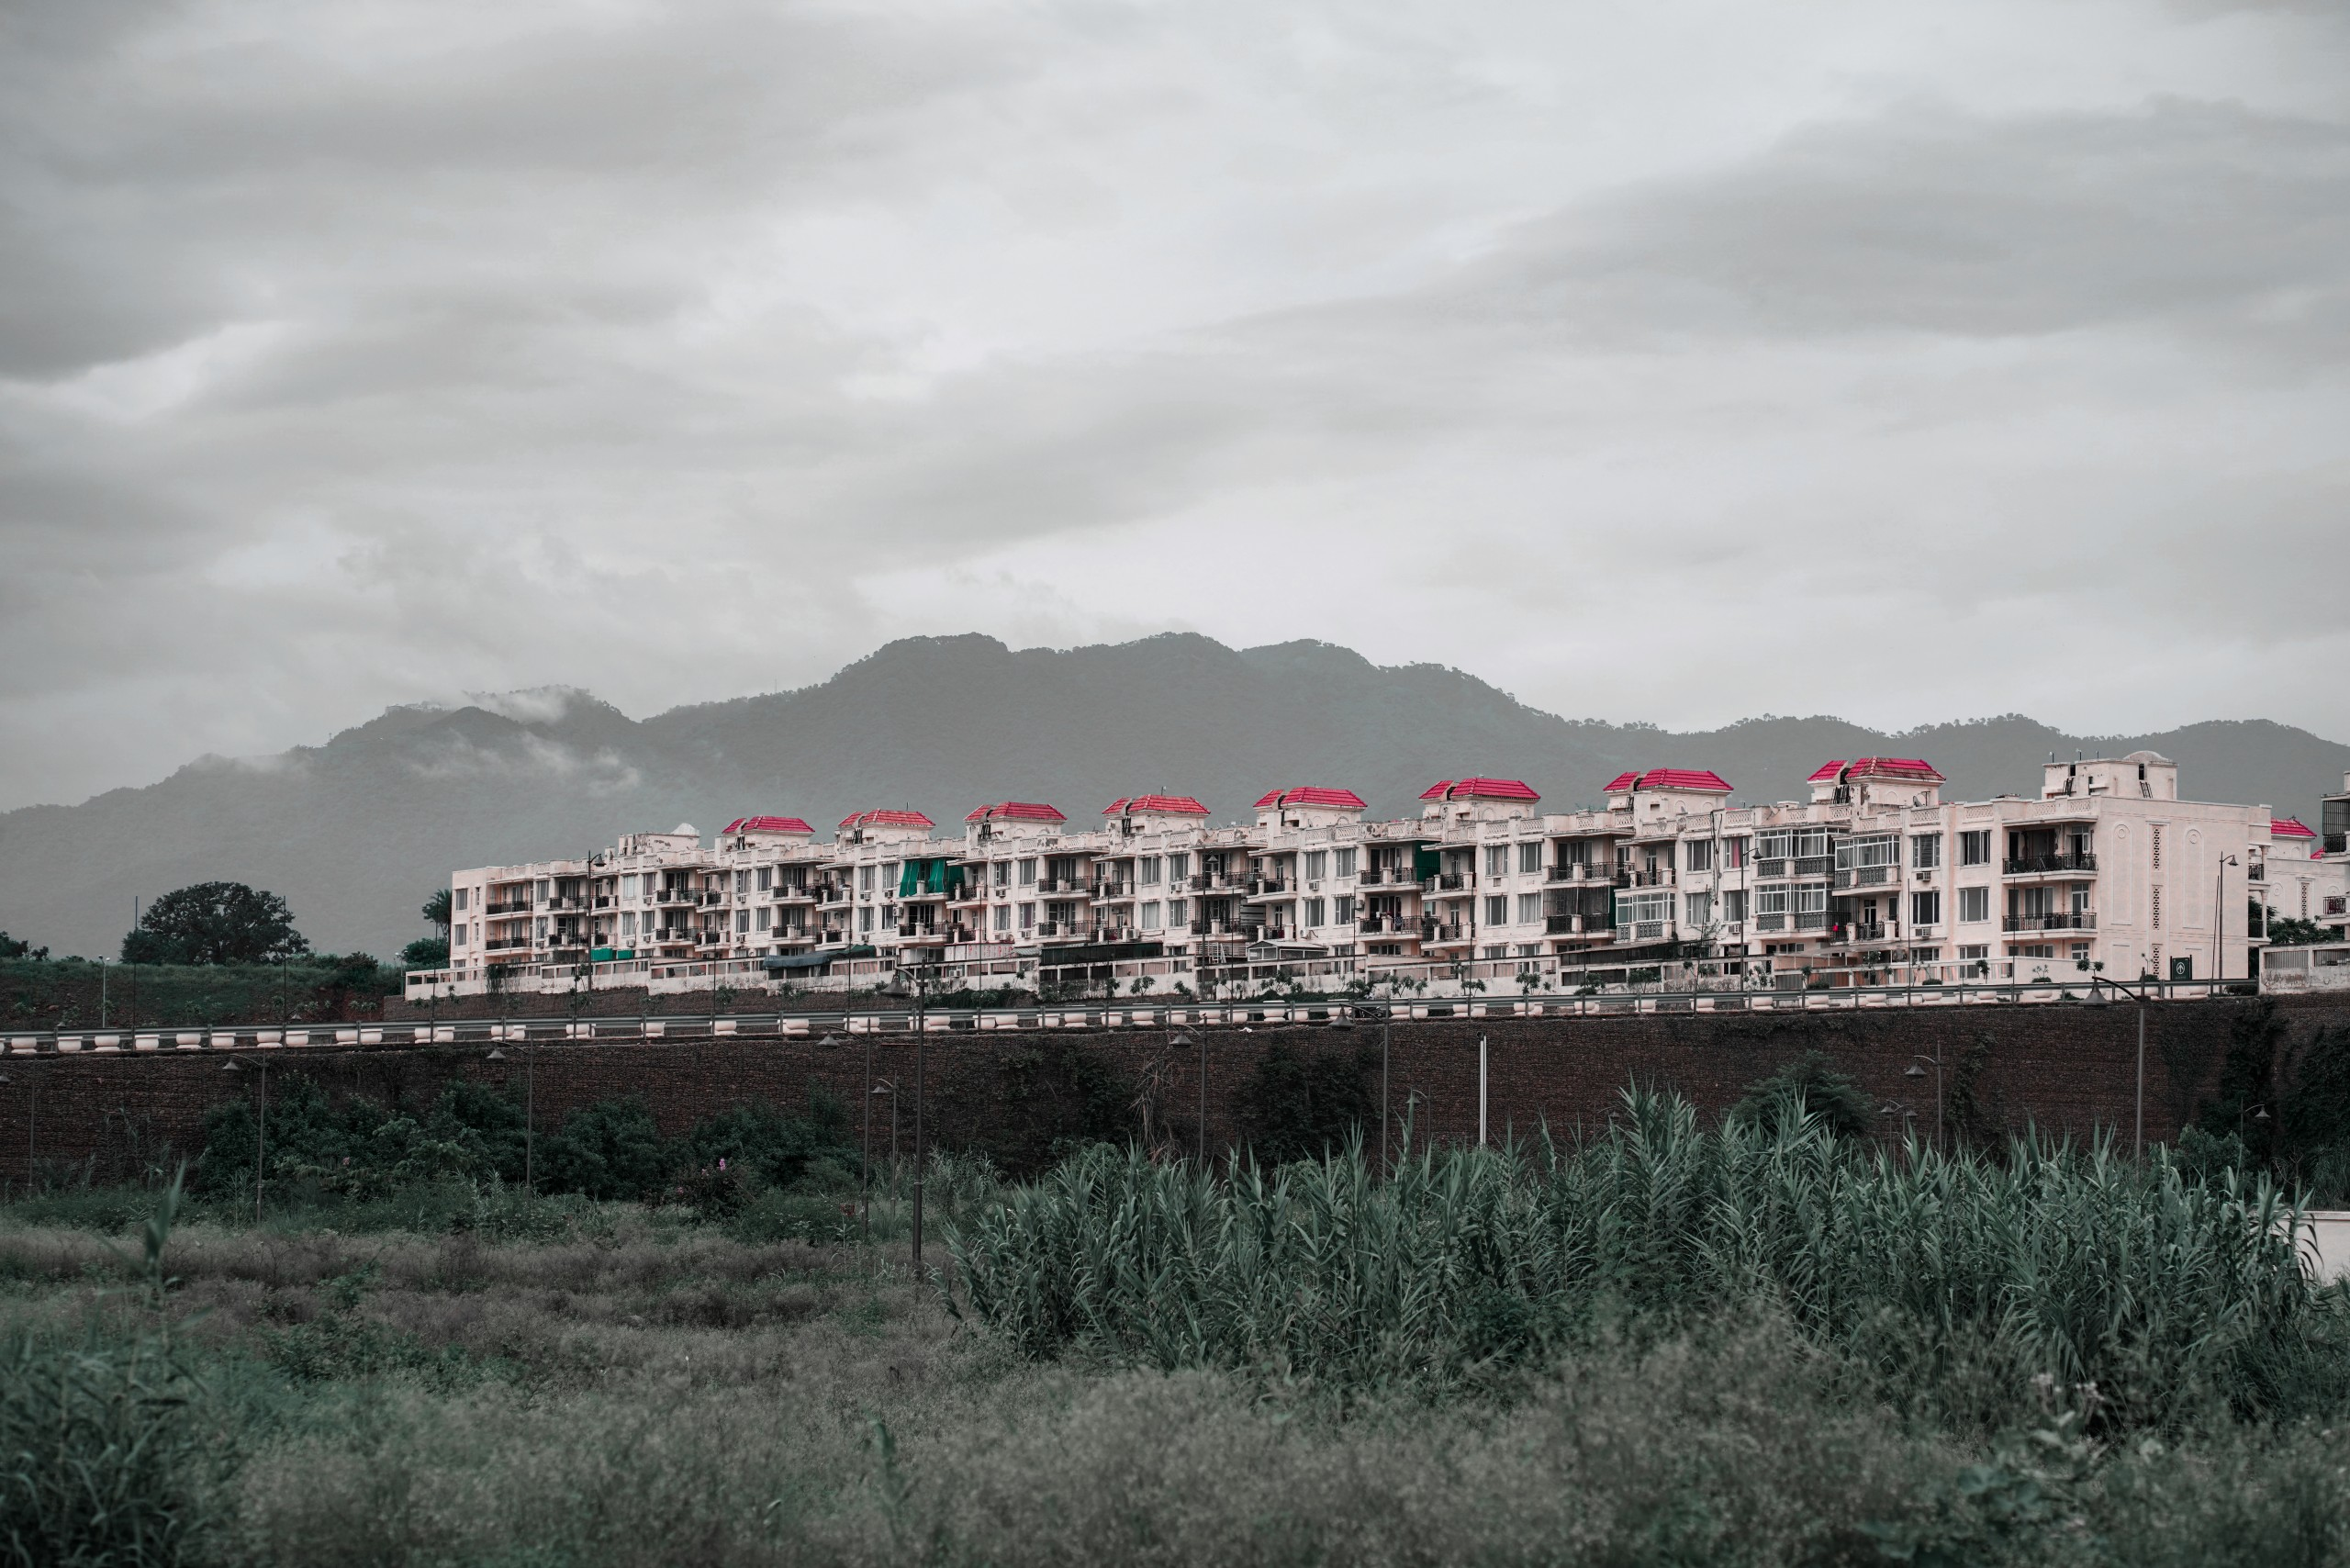 Buildings against tall mountains